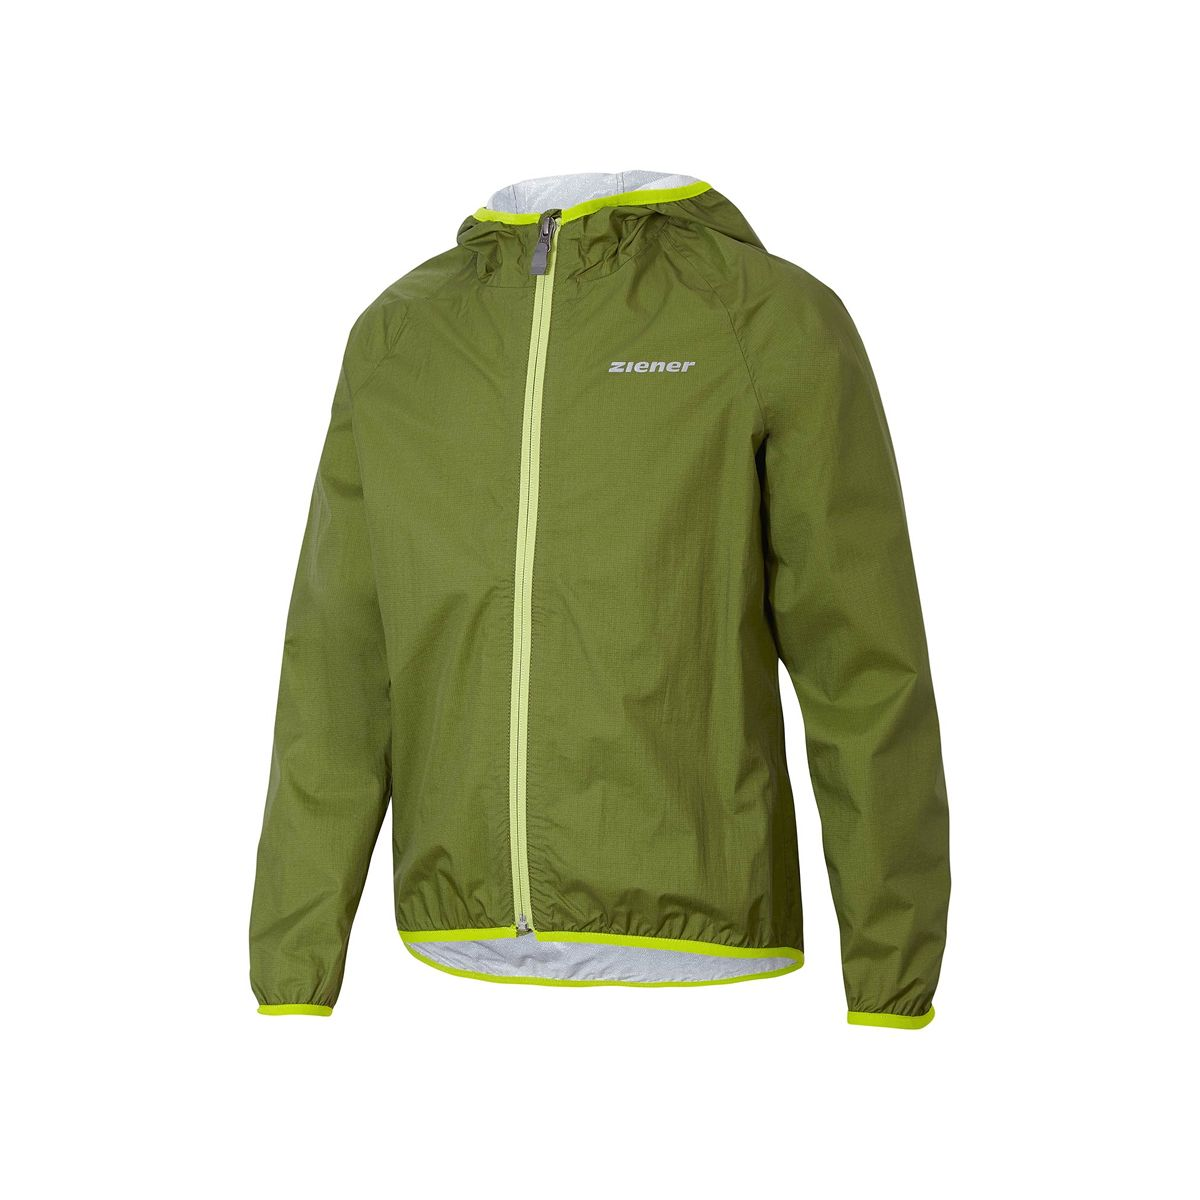 CHIMBA kids' rain jacket